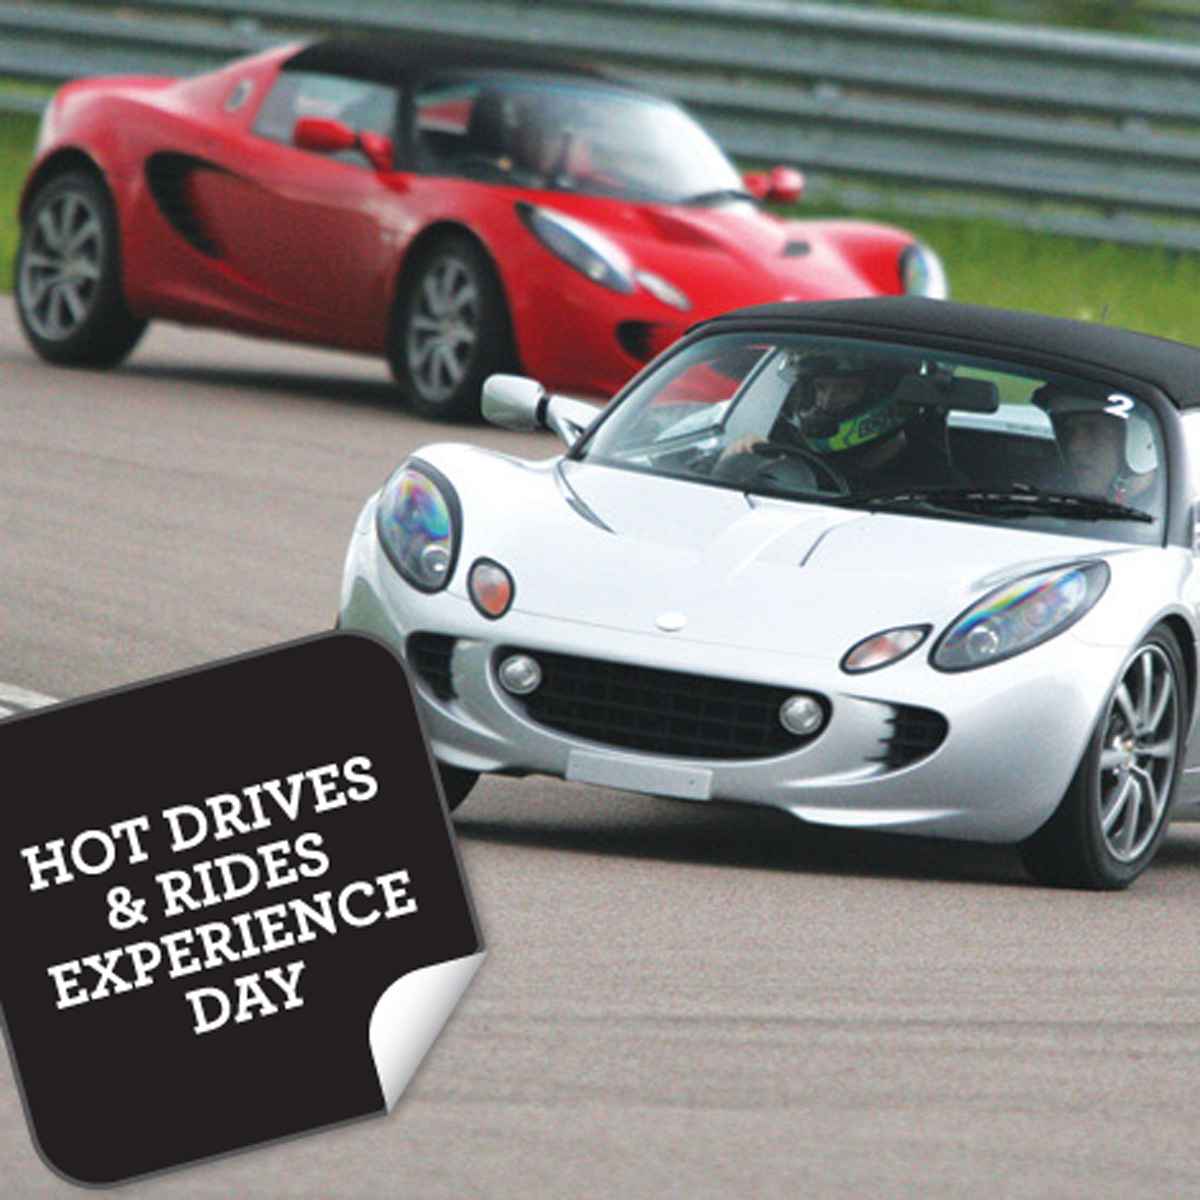 Hot Drives & Rides Experience Day